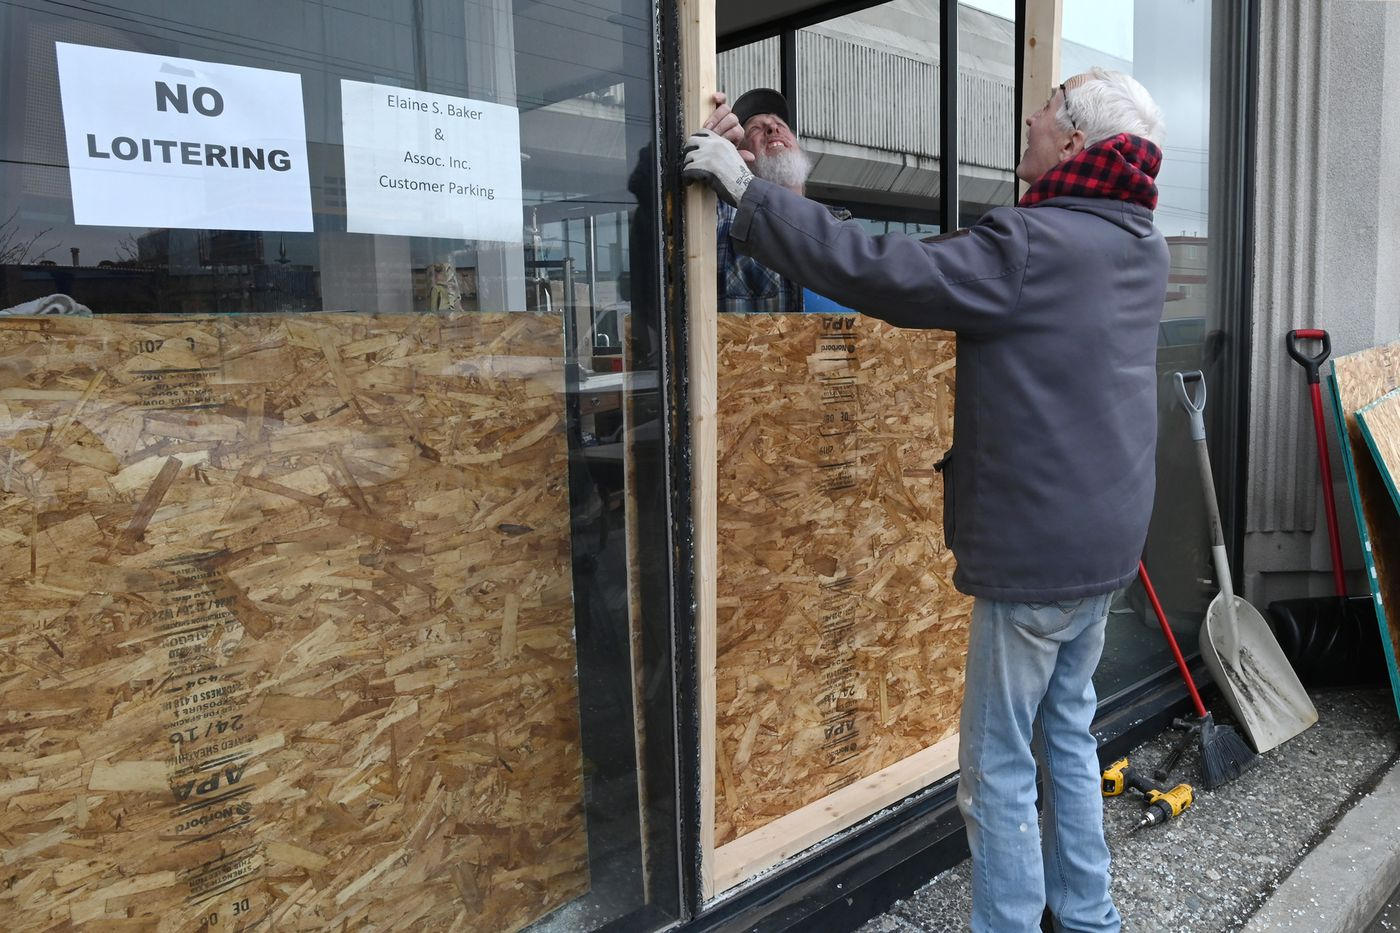 Paul and Vernon Wood of Wood Enterprises board up a smashed window at Elaine S. Baker and Associates, located on the corner of 5th & Gamble, after a vandal hurled a rock through it on Thursday, April 16, 2020. (Bill Roth / ADN)